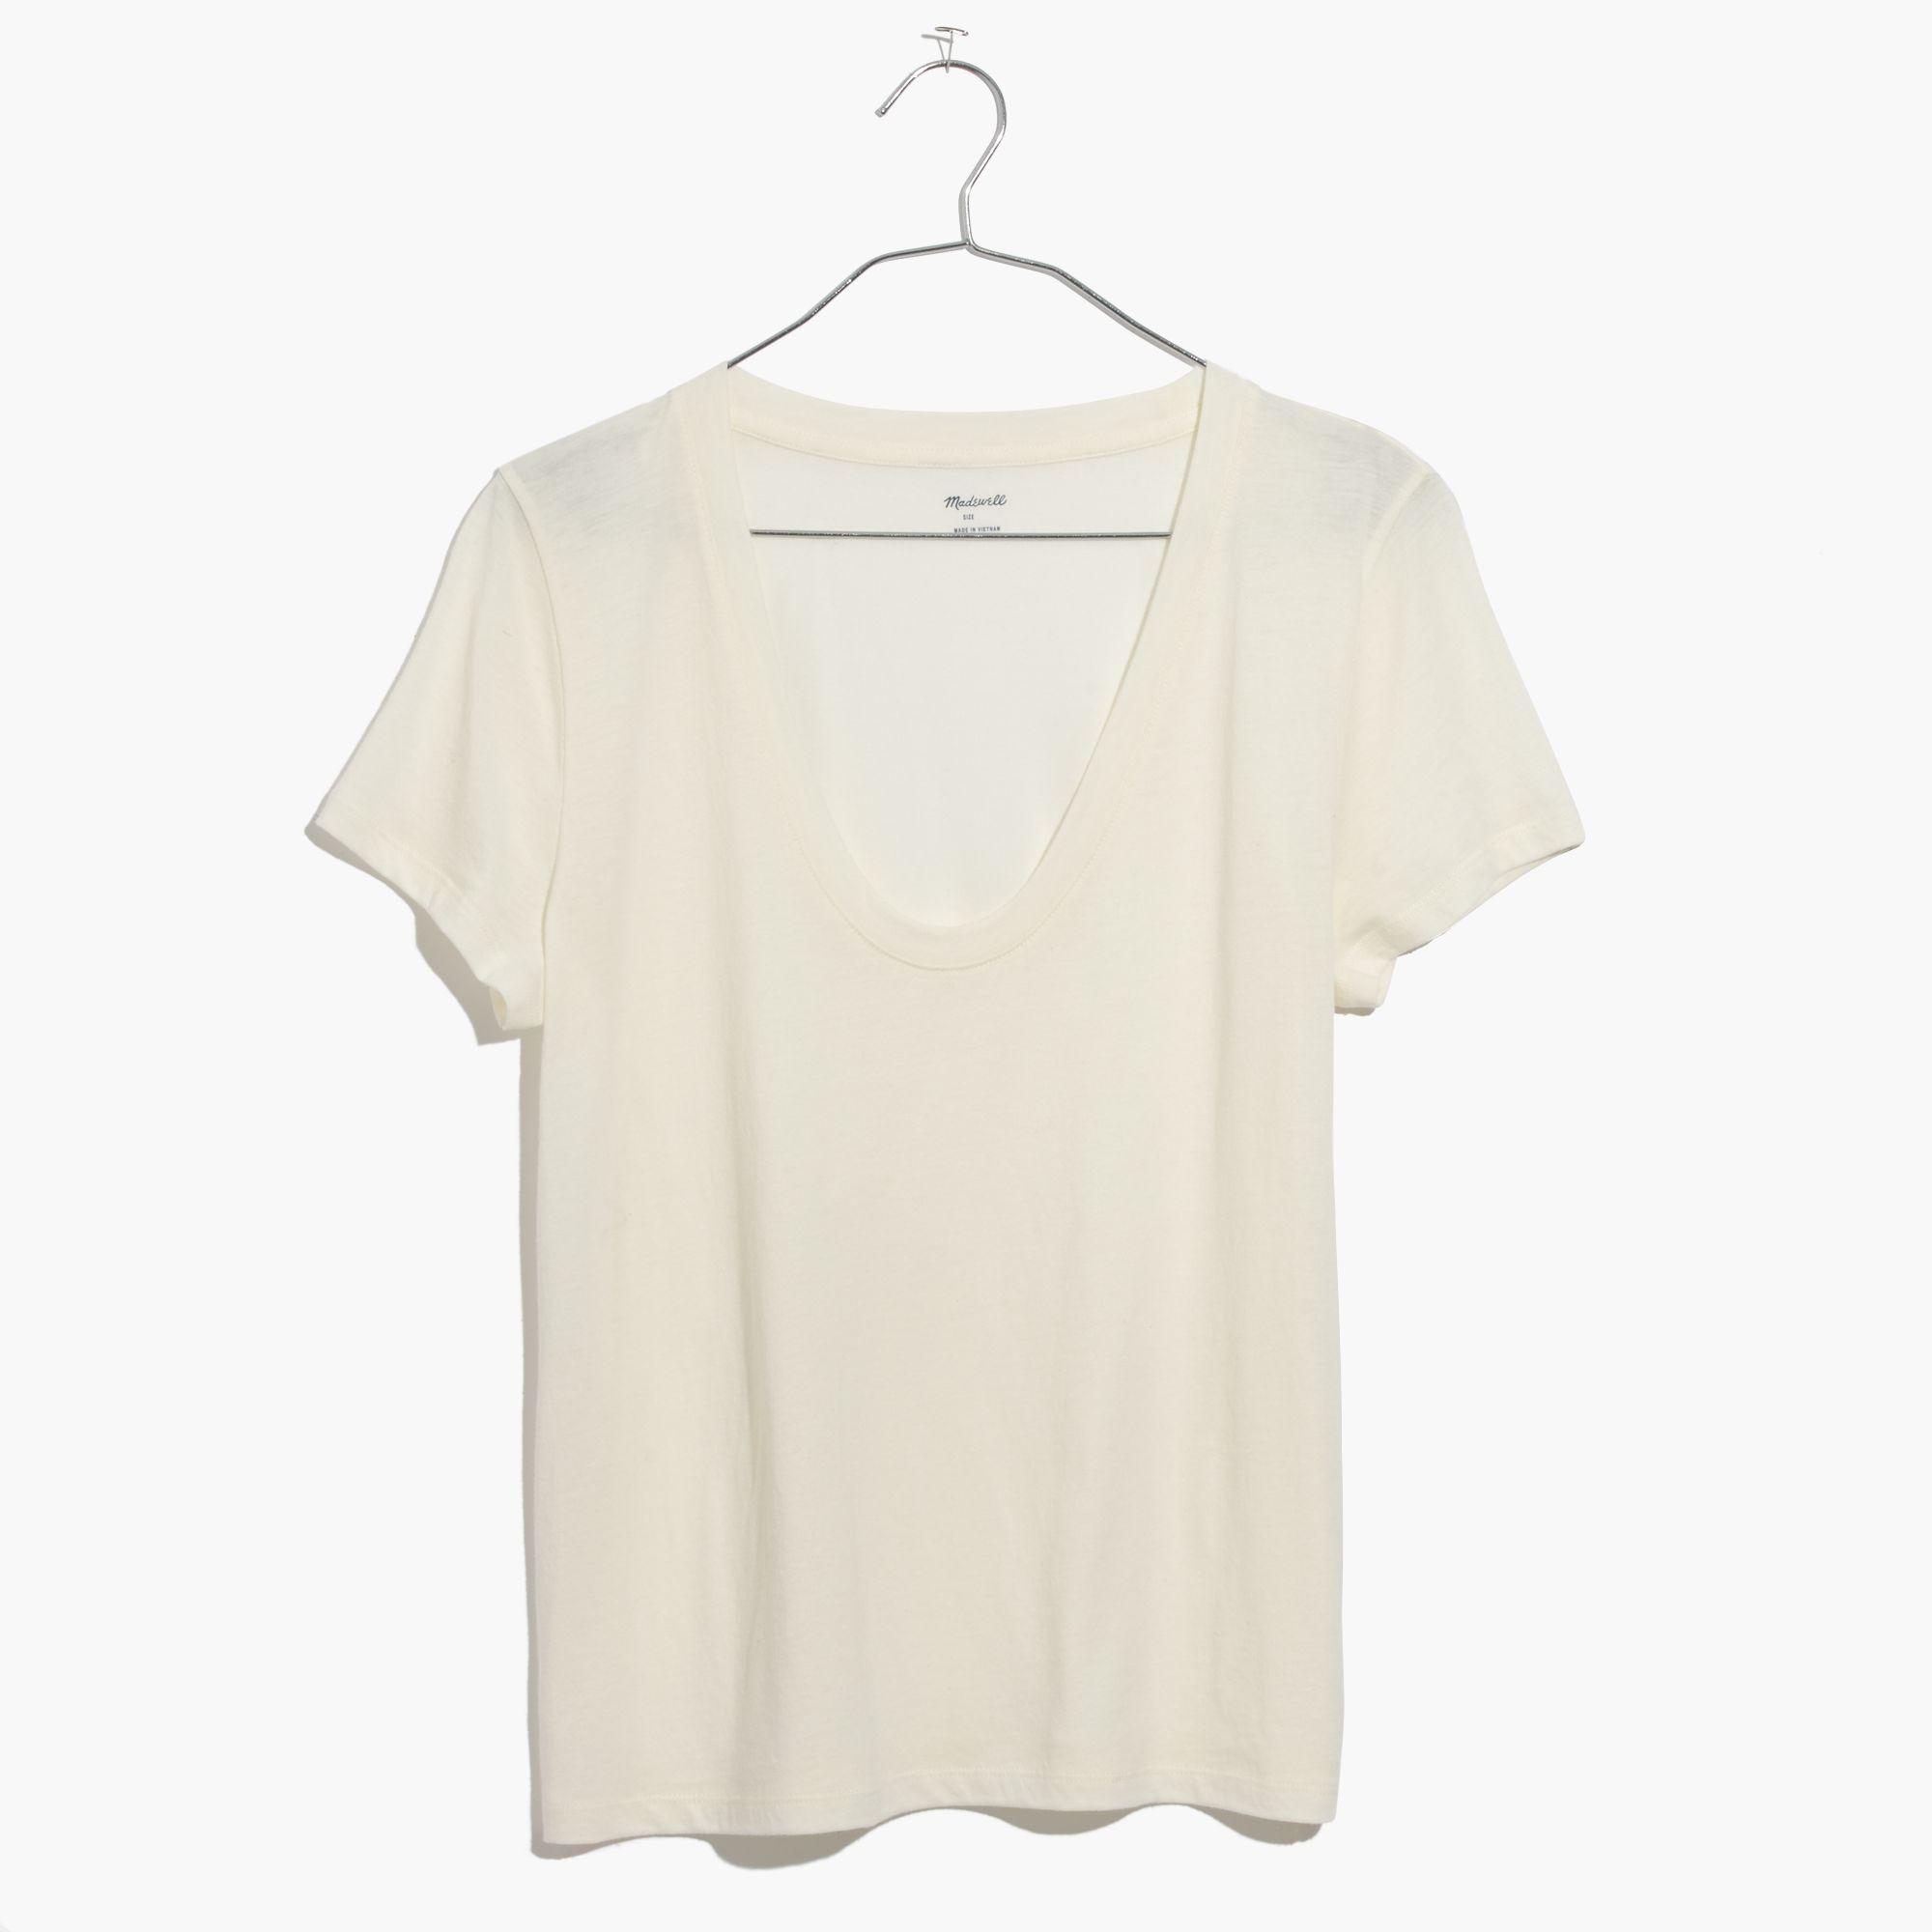 eae1f1db67250 Lyst - Madewell Alto Scoop Tee in White